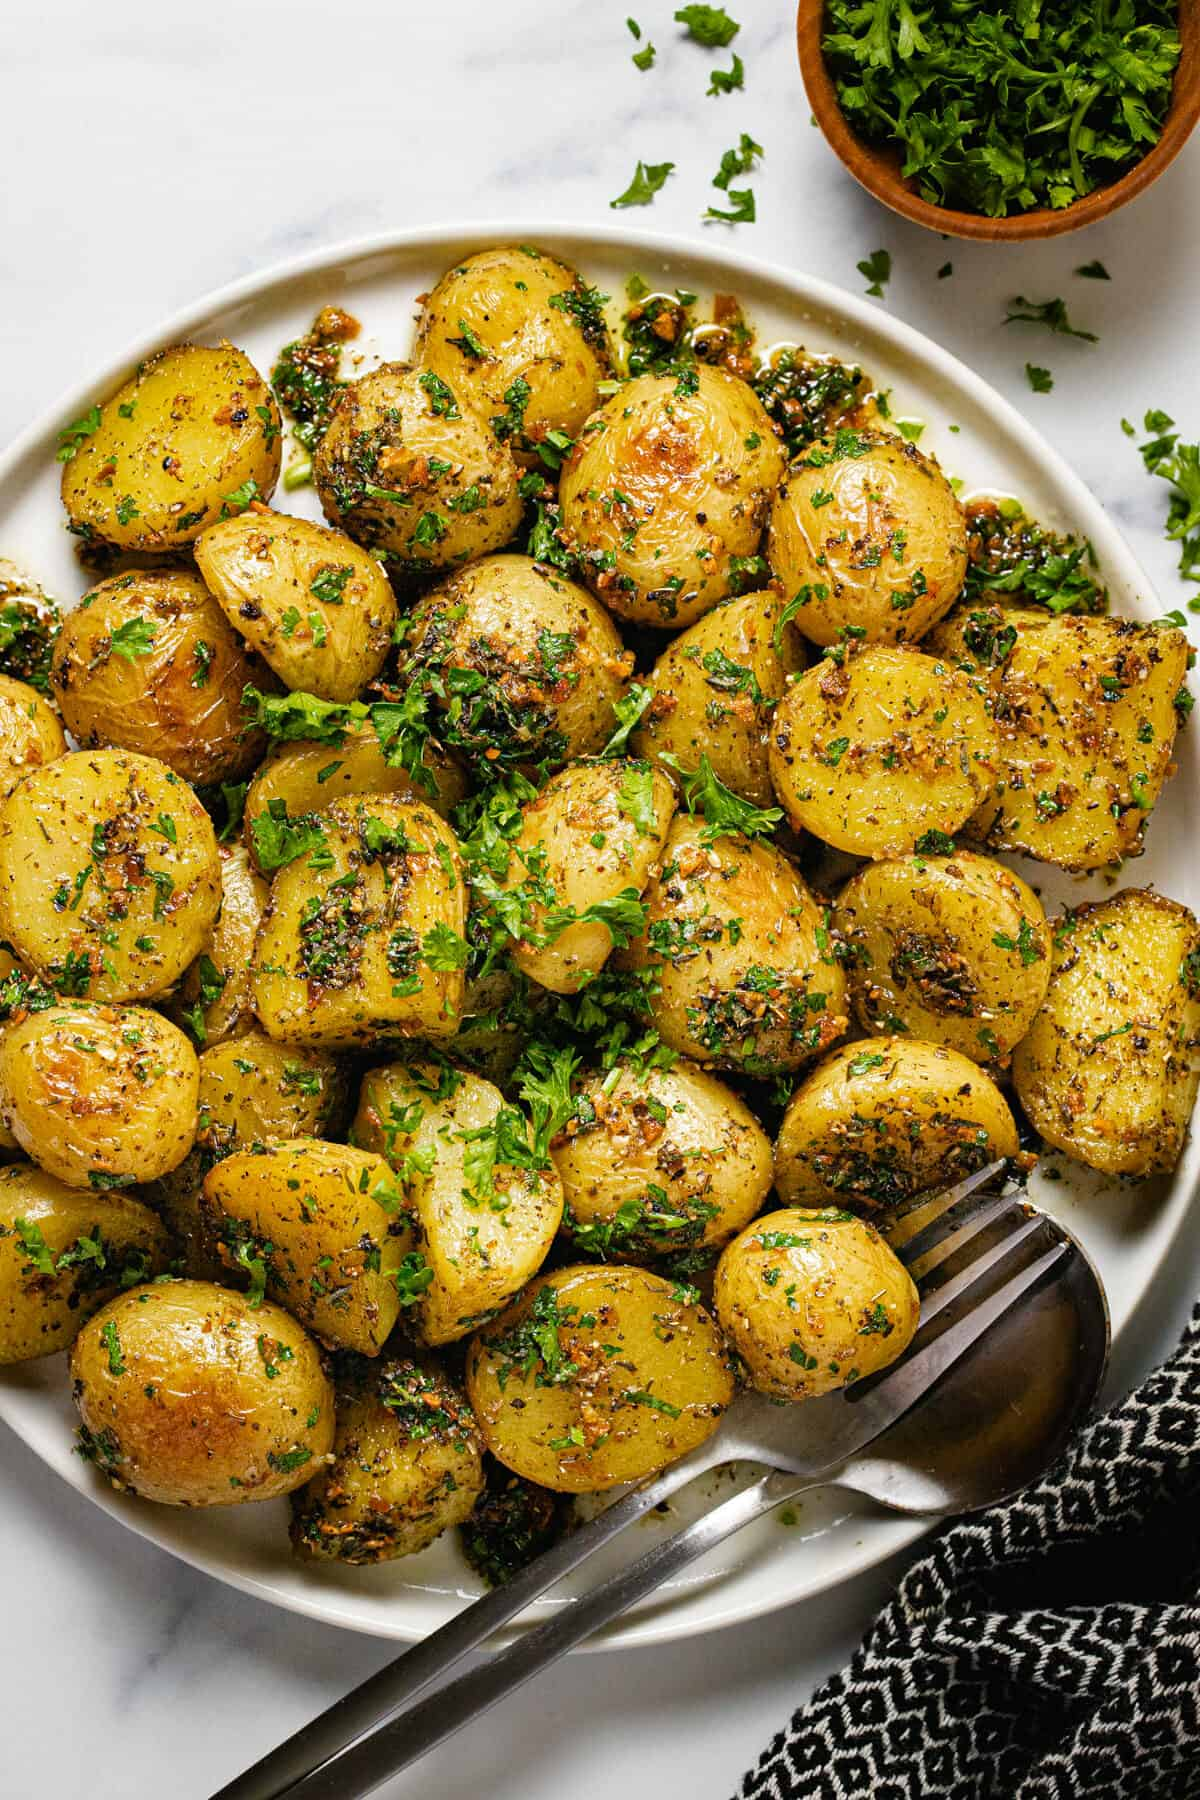 White plate filled with herby roasted baby potatoes garnished with parsley